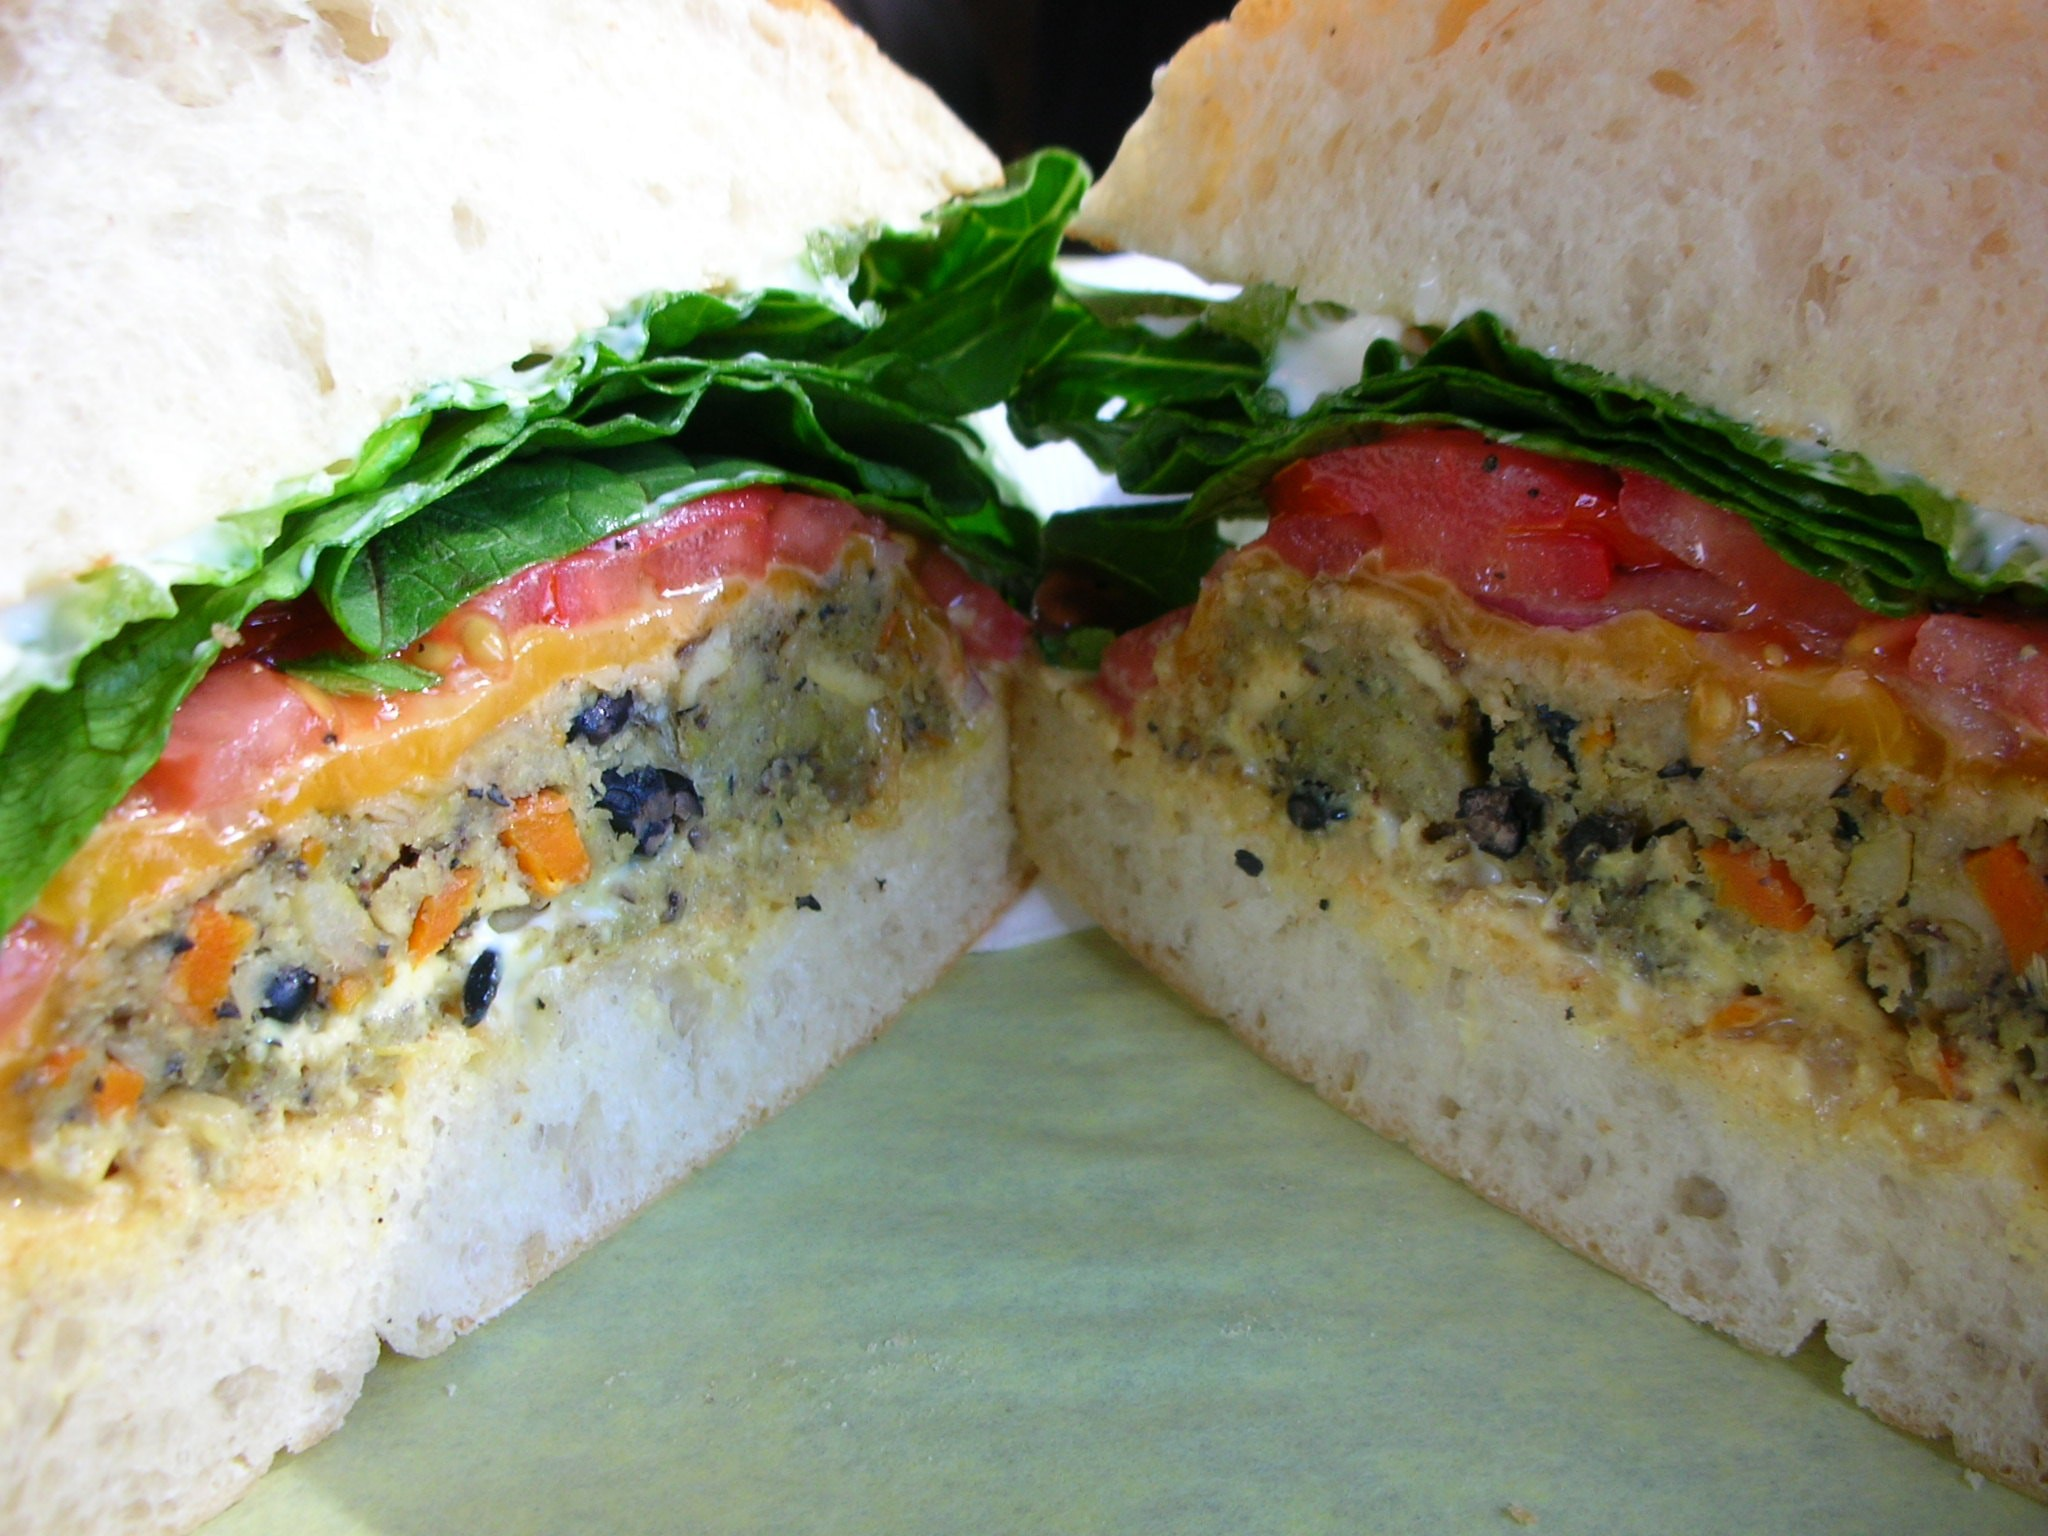 Ponsonby is home to some of Auckland's best veggie burgers